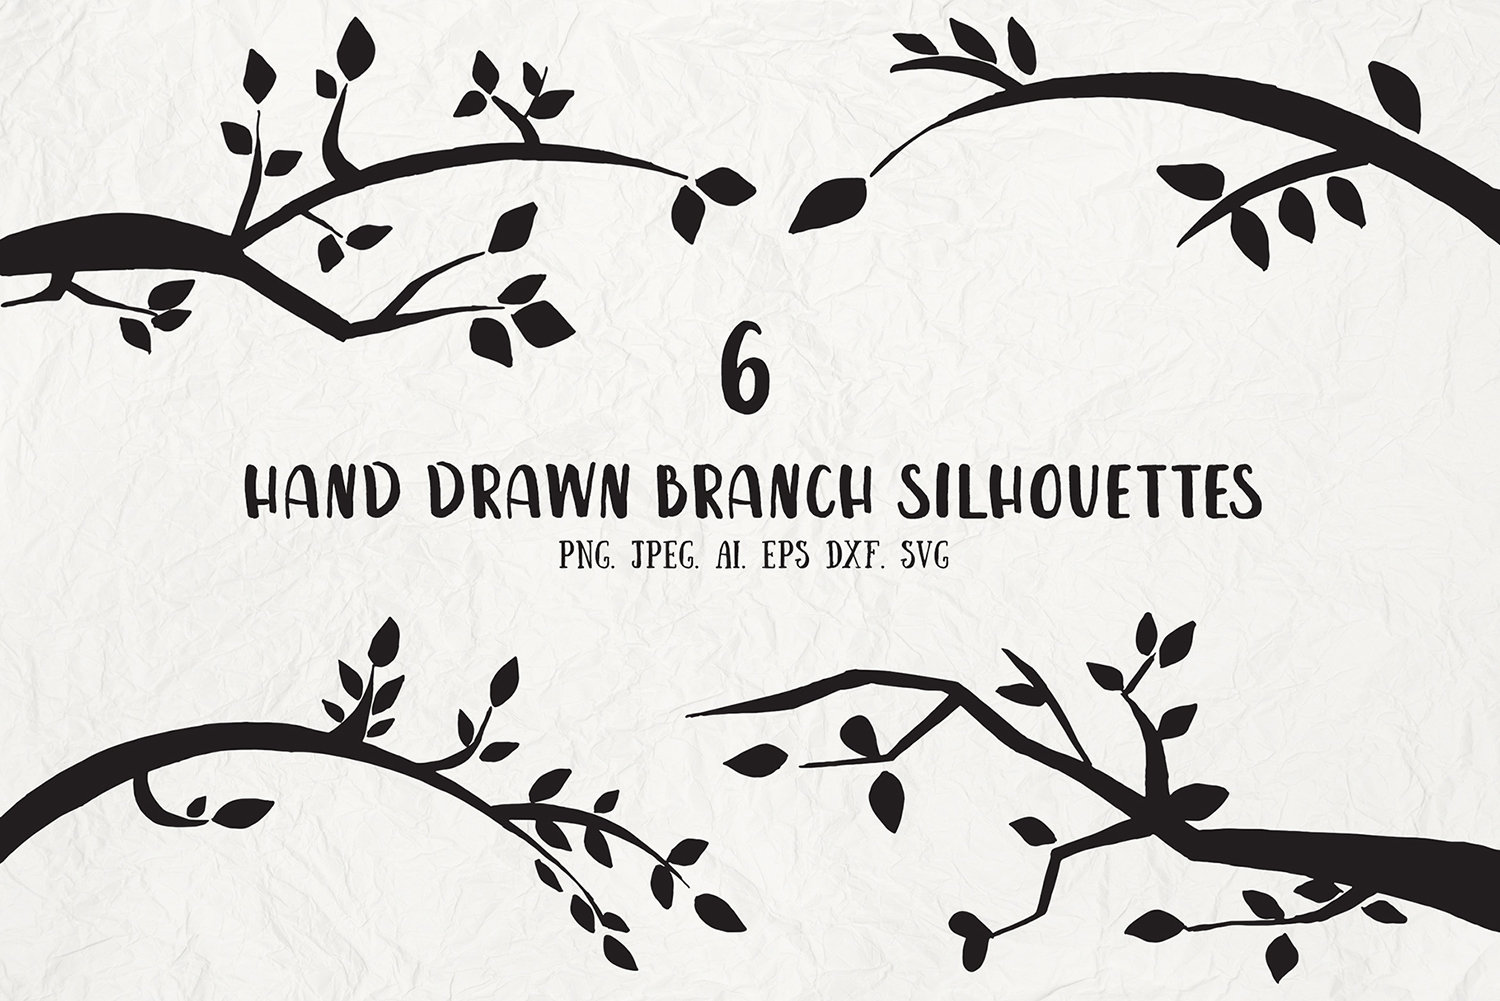 Download Free Hand Drawn Branch Silhouettes Cliparts Graphic By Creative Tacos for Cricut Explore, Silhouette and other cutting machines.